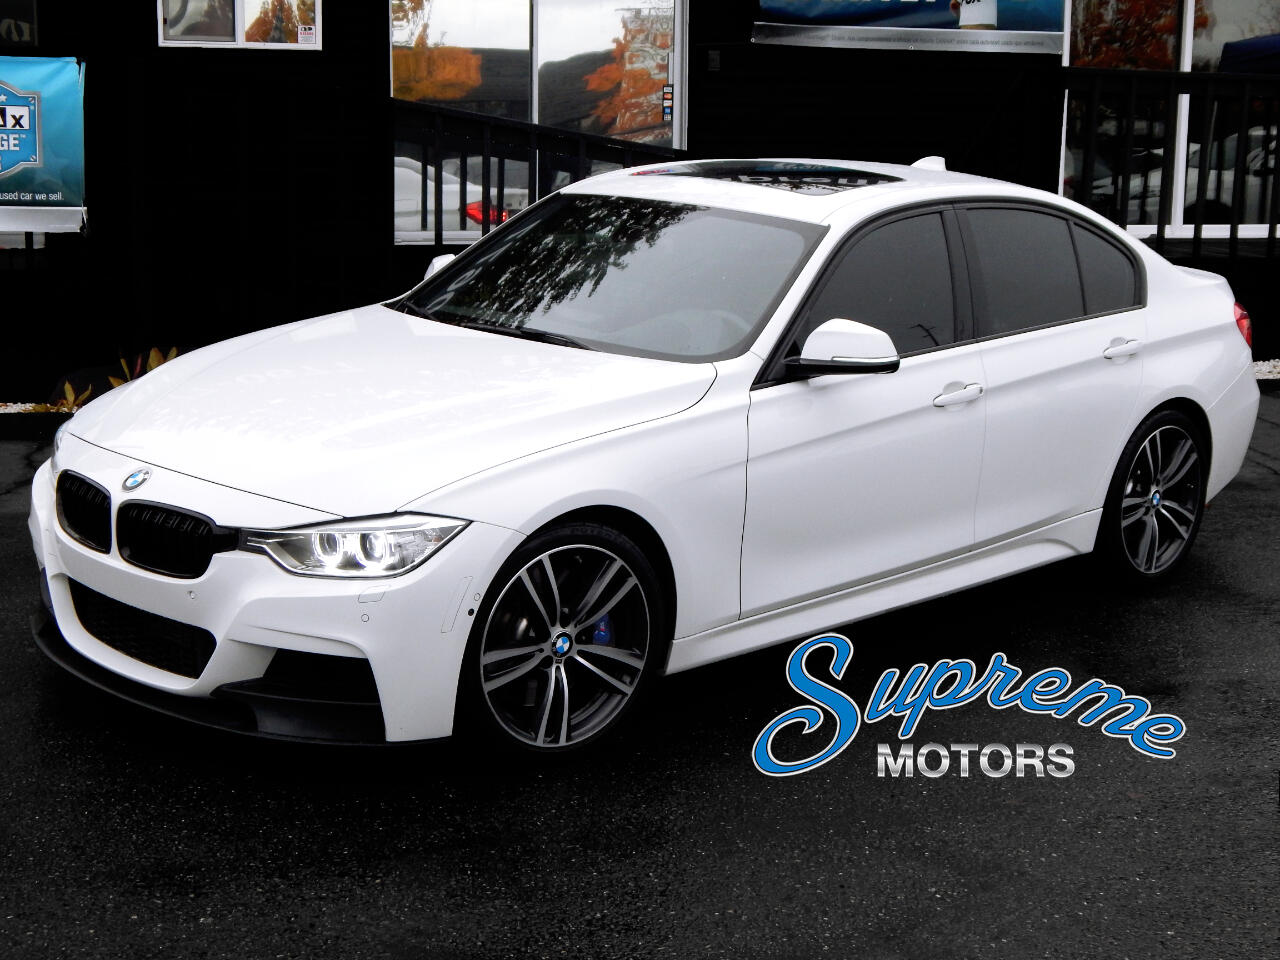 2015 BMW 3-Series 335i M-Sport, M Brake Pkg, HUD Heads Up Display, T